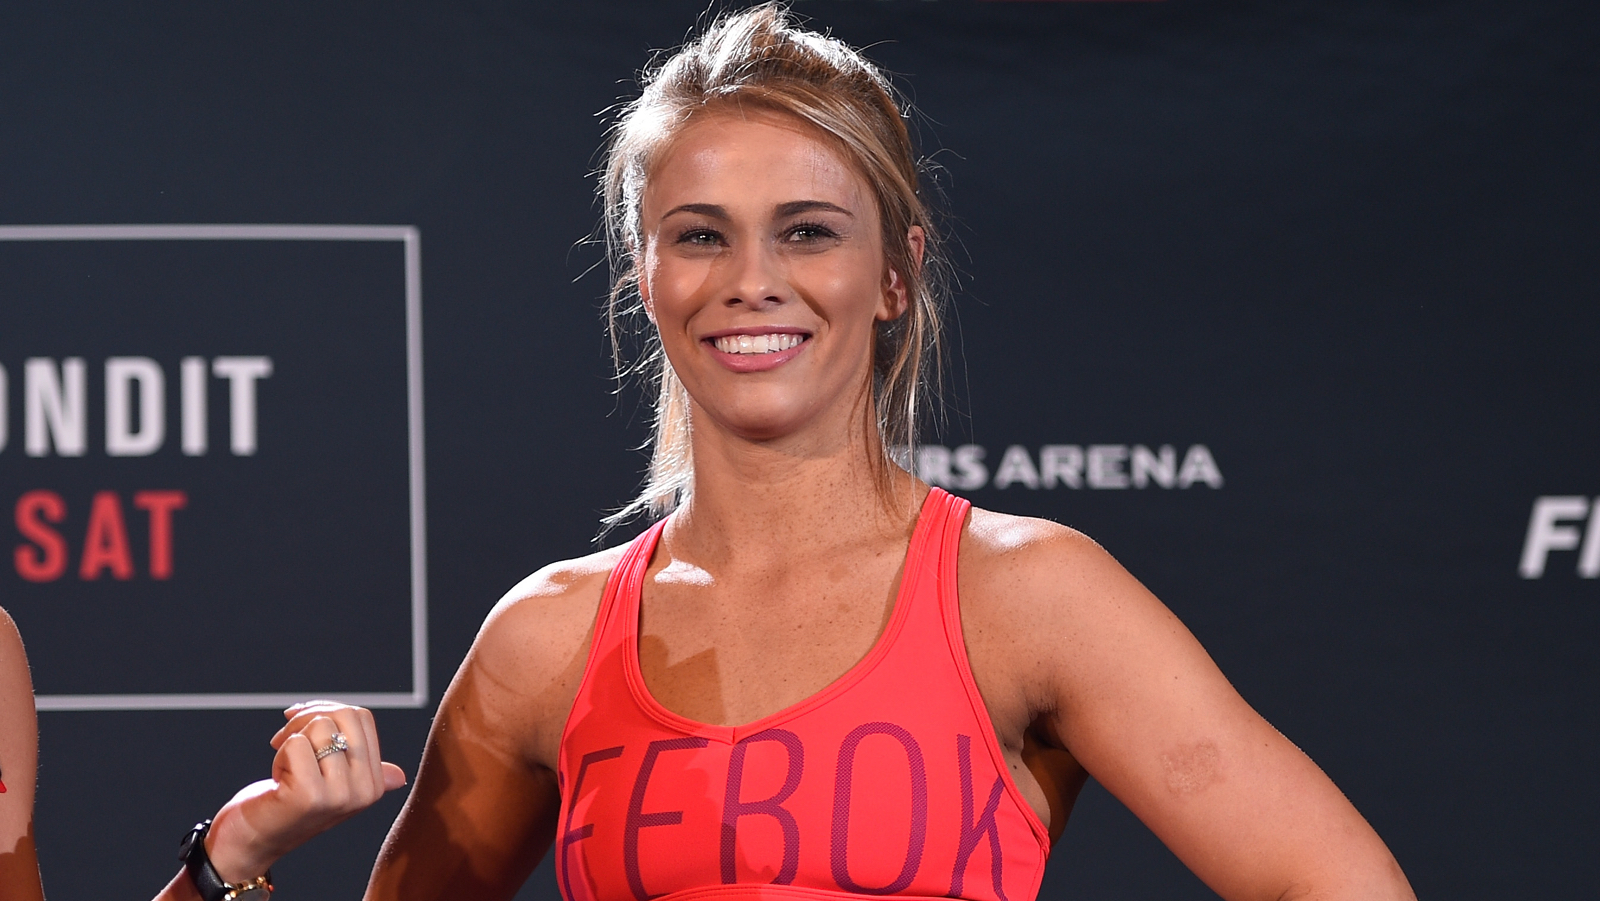 VANCOUVER, BC - AUGUST 25:  (L-R) UFC host and reporter Megan Olivig interacts with Paige VanZant during an open workout session for media and fans at the Hyatt Regency Vancouver on August 25, 2016 in Vancouver, Canada. (Photo by Jeff Bottari/Zuffa LLC/Zuffa LLC via Getty Images)